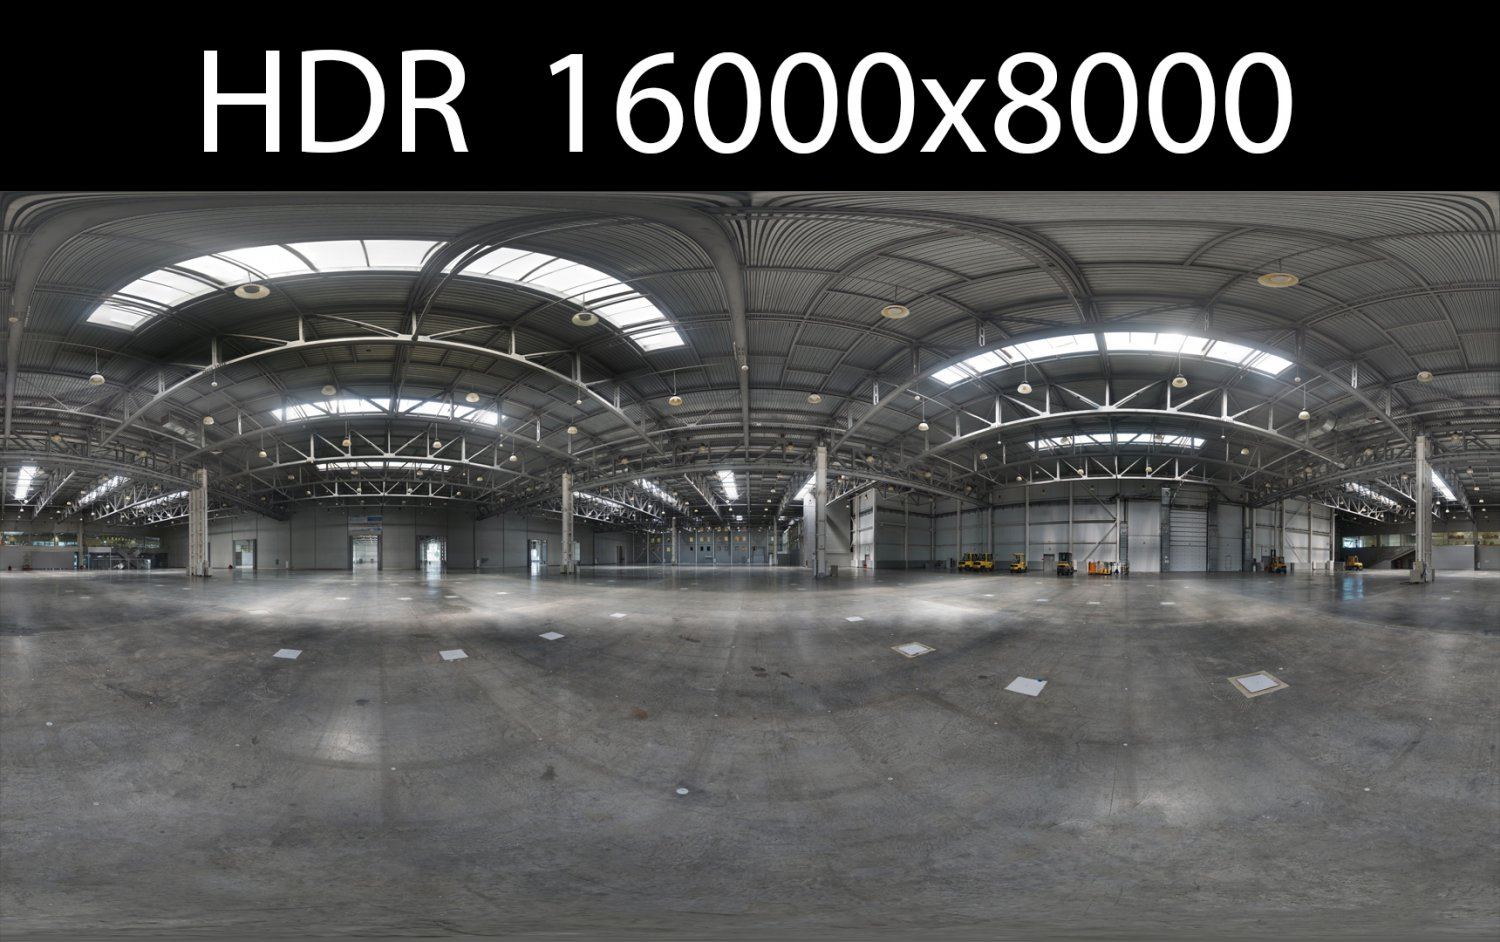 D Max Exhibition Models : List of synonyms and antonyms the word hdri images for d